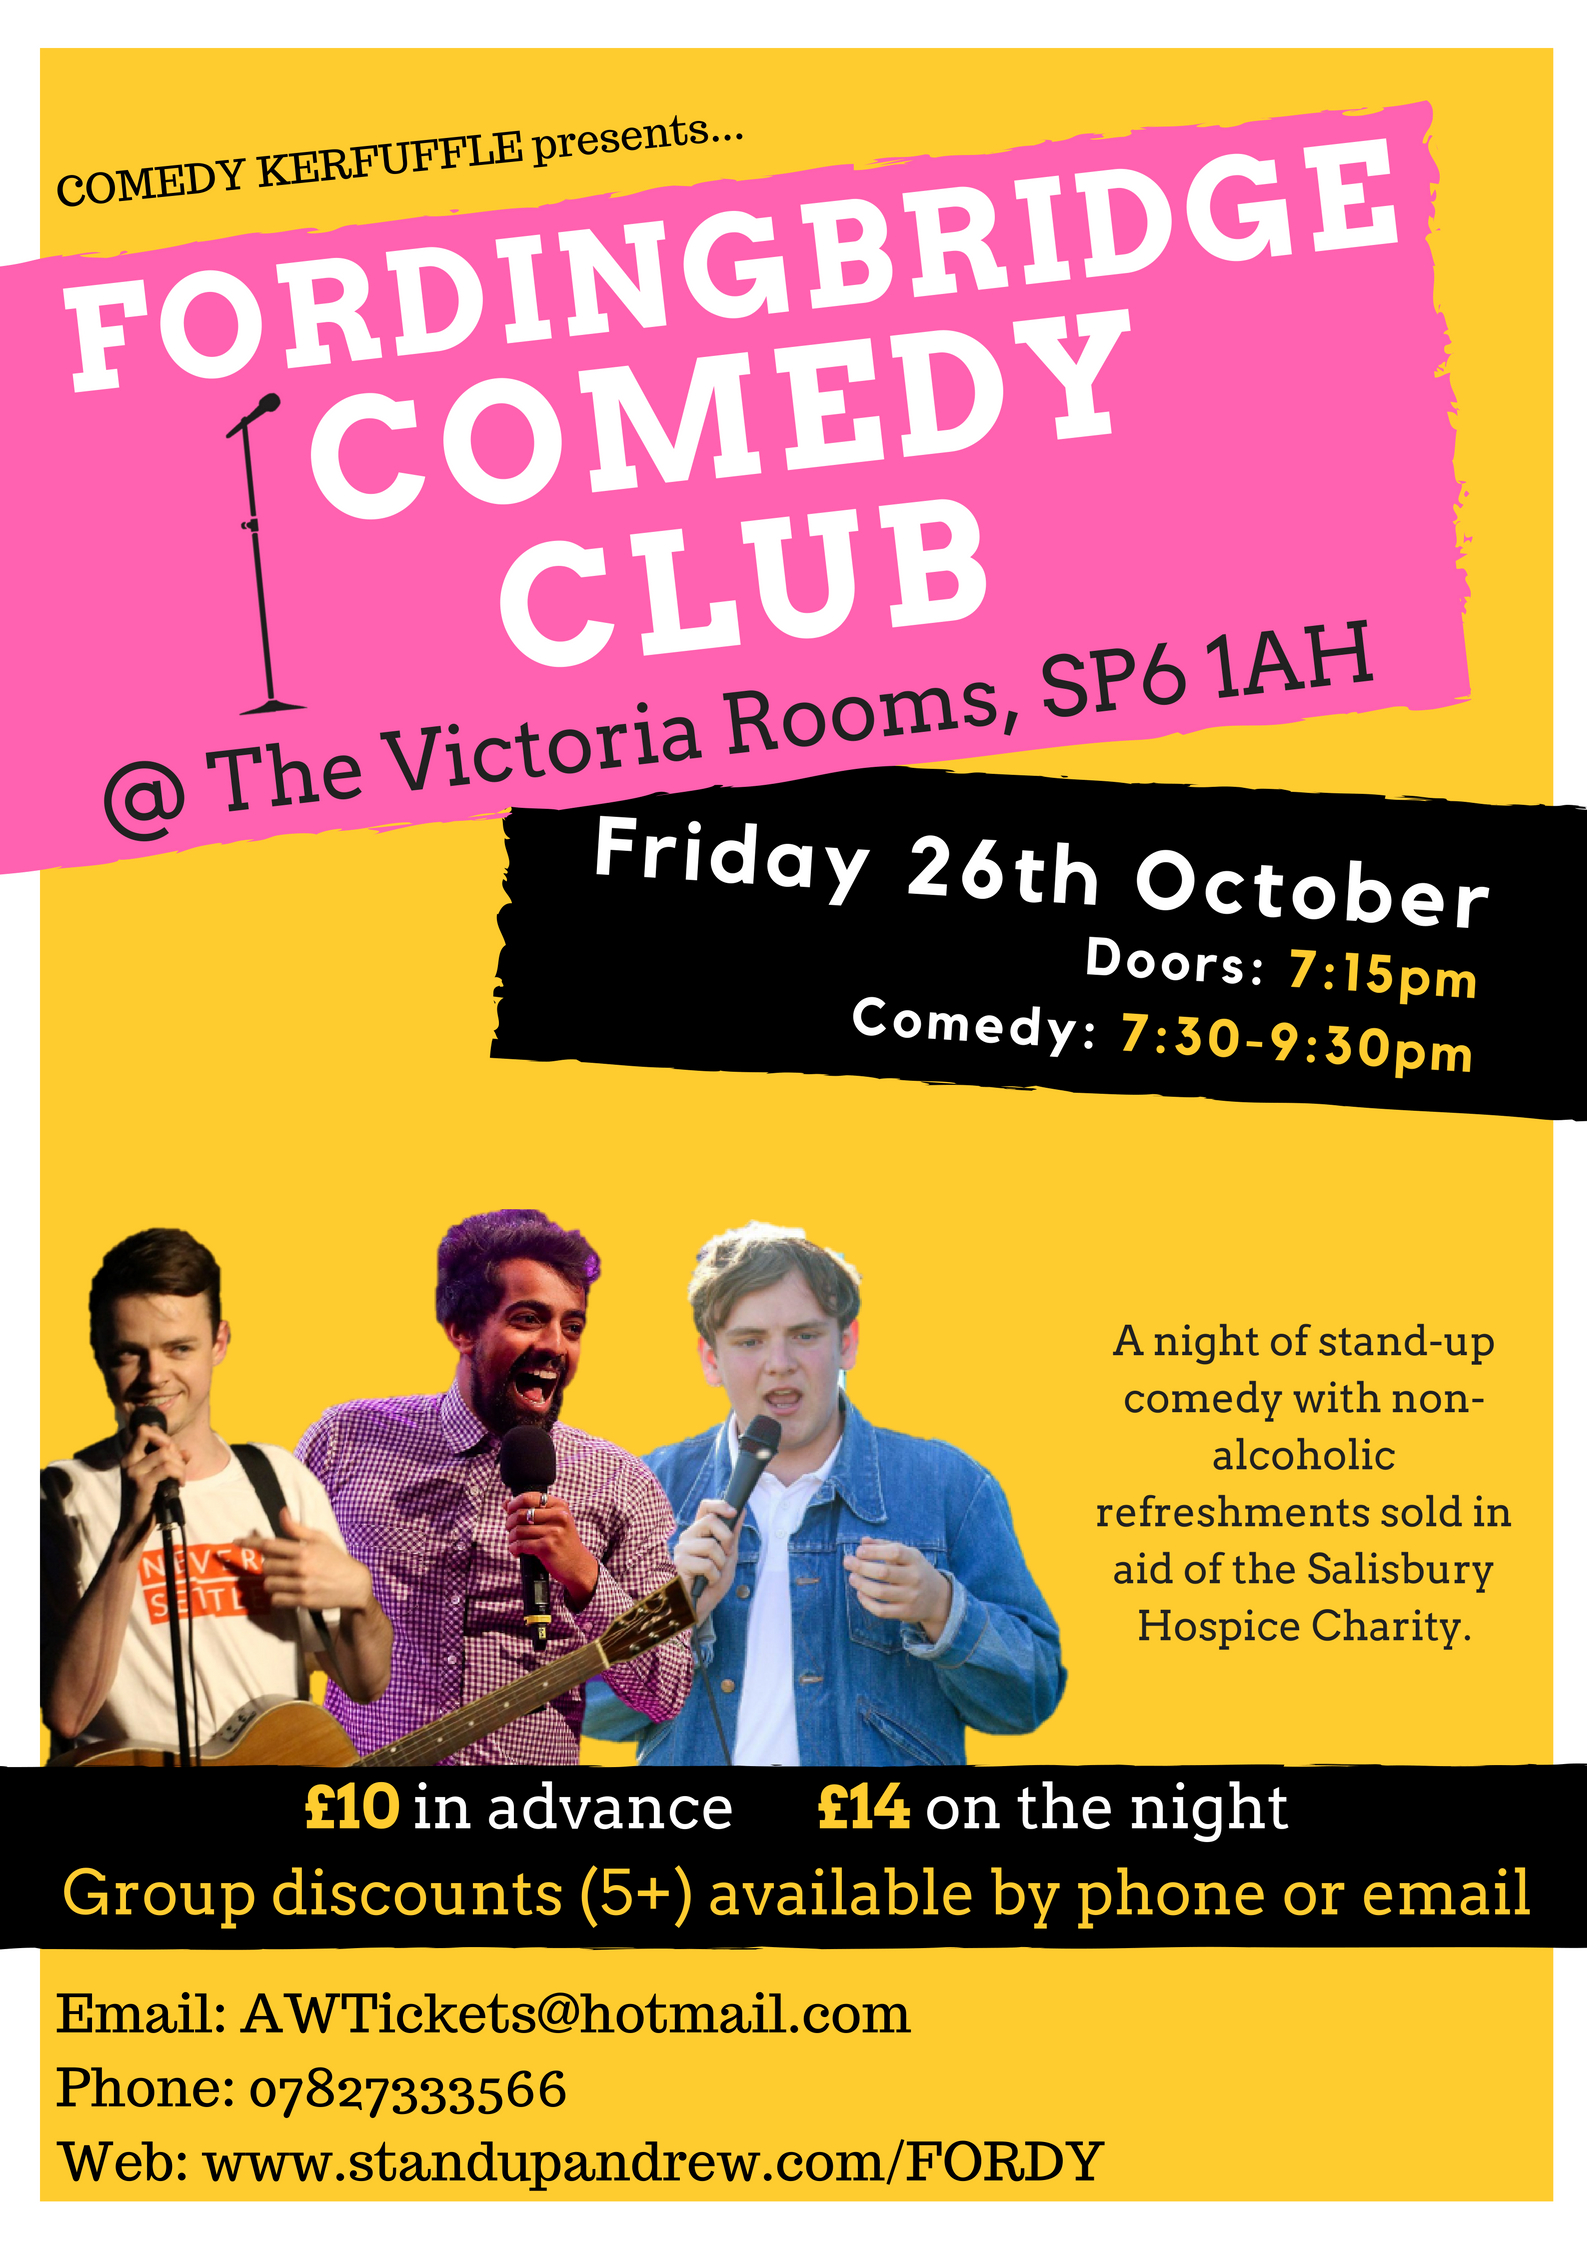 Fordingbridge Comedy Club